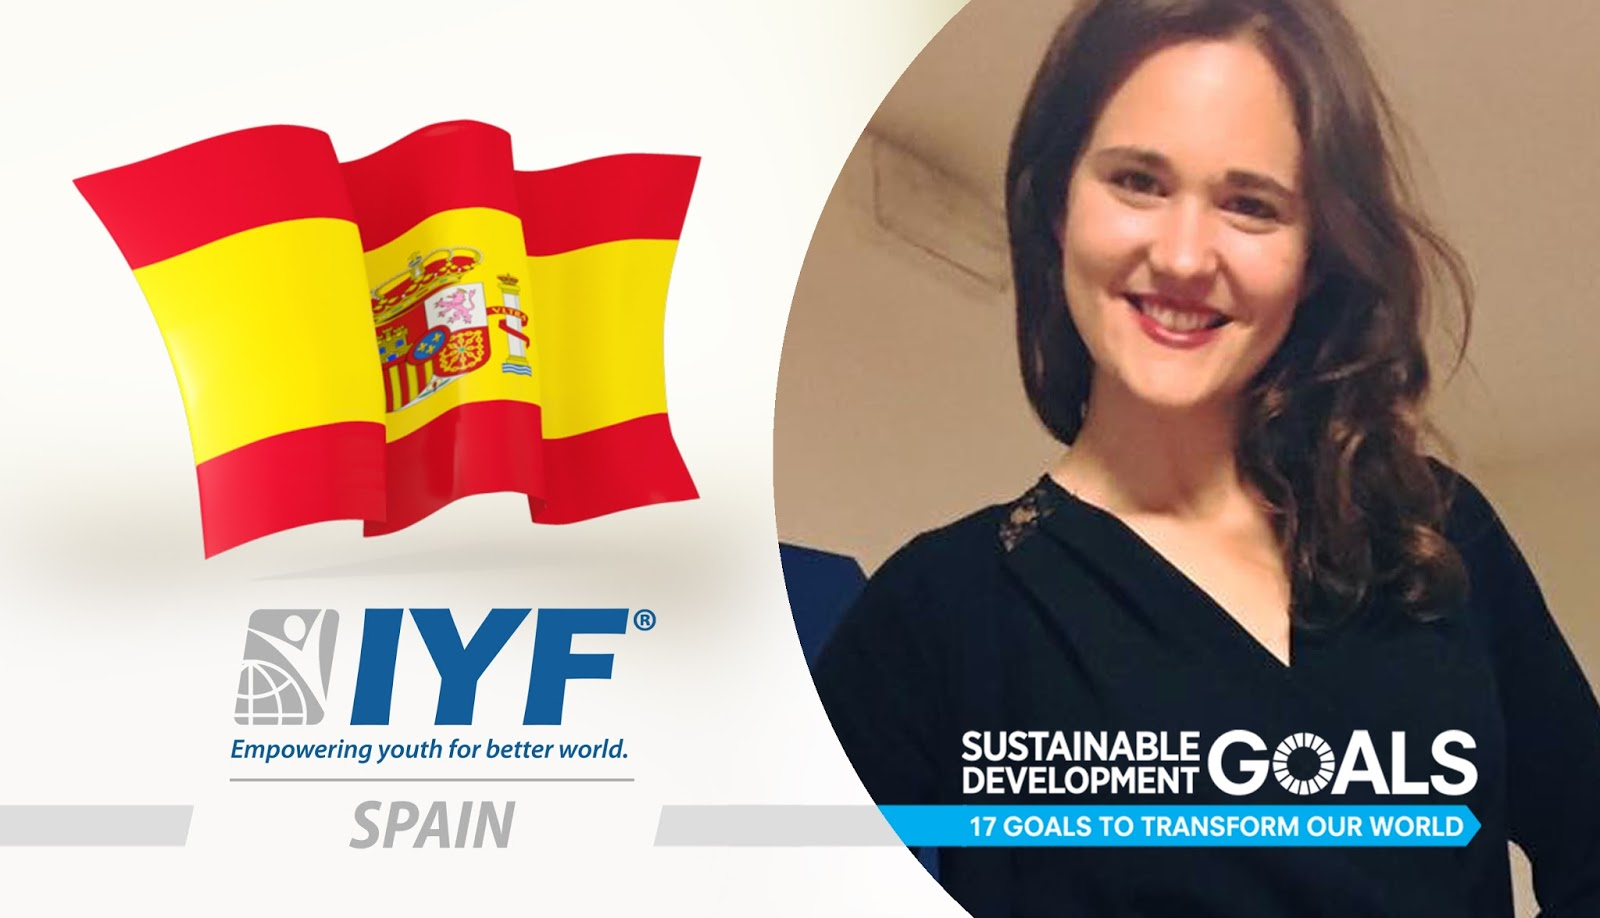 Marta Babío Godinez, IYF Representative in Spain